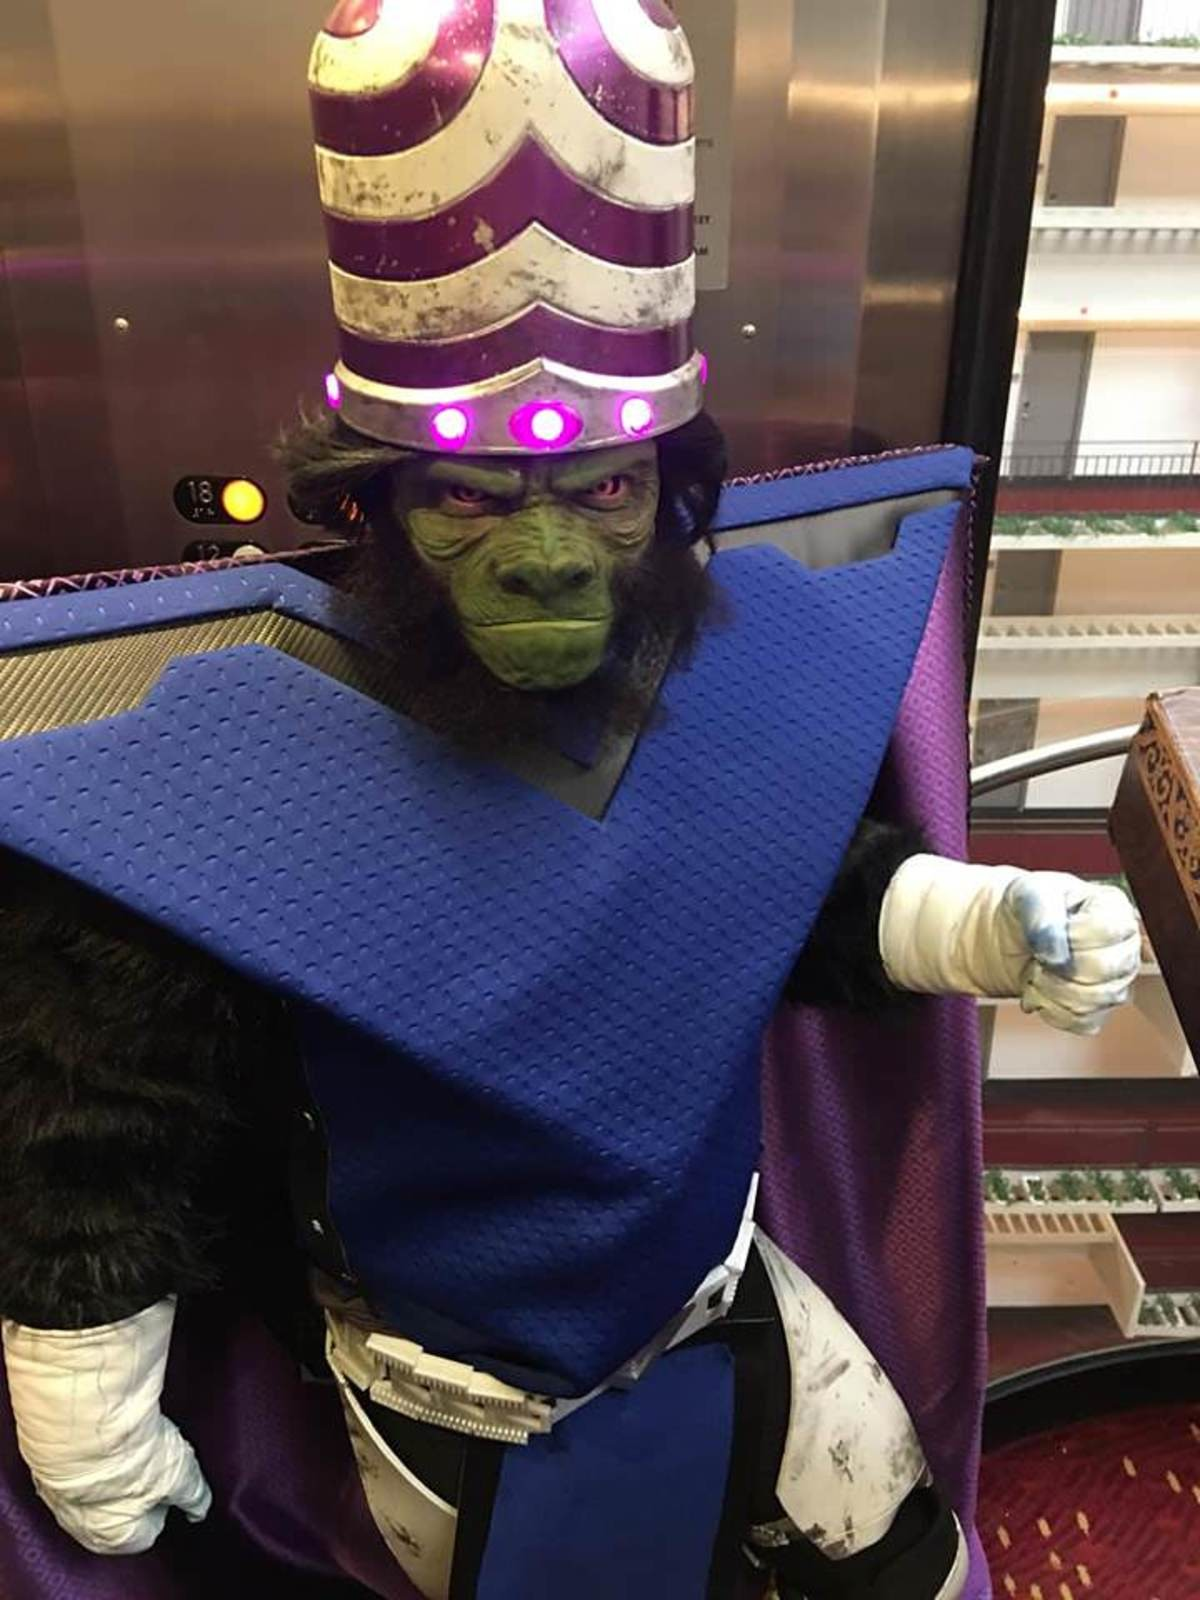 This Mojo cosplay. join list: CartoonsGalore (168 subs)Mention History.. That helmet is out standing i would love to hear this guy talk like mojo